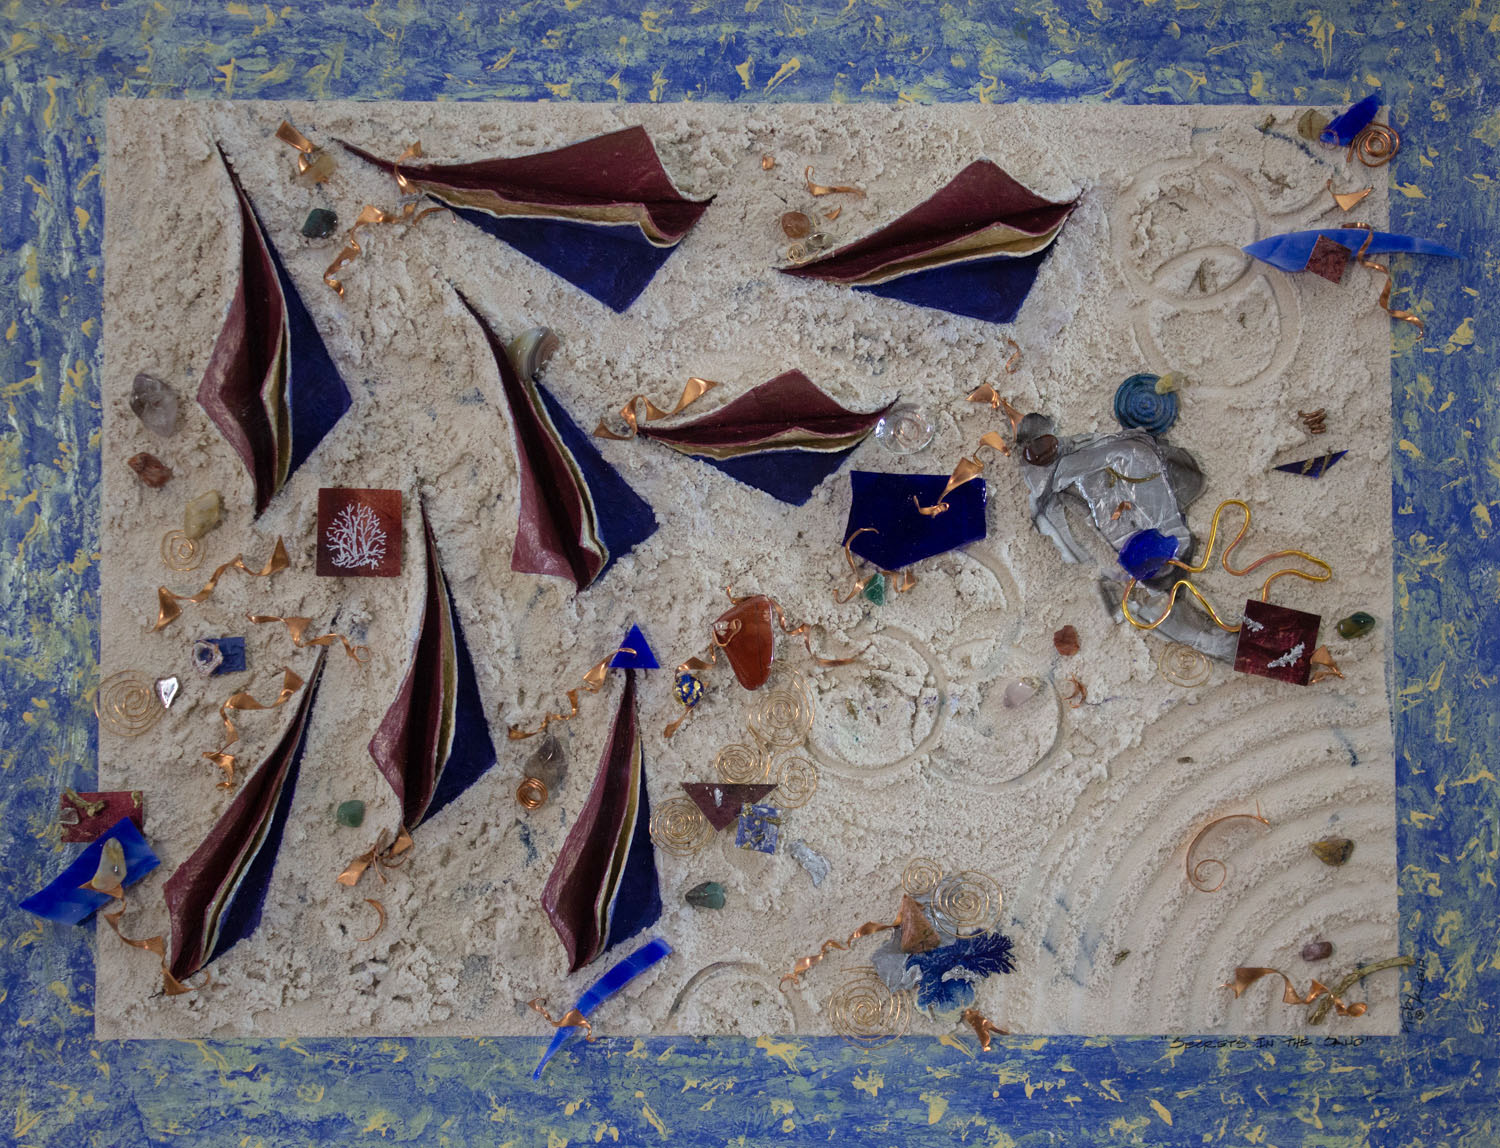 Secrets of the Sand by Toby Klein, Collage, Foundation Purchase Award of 1996-97